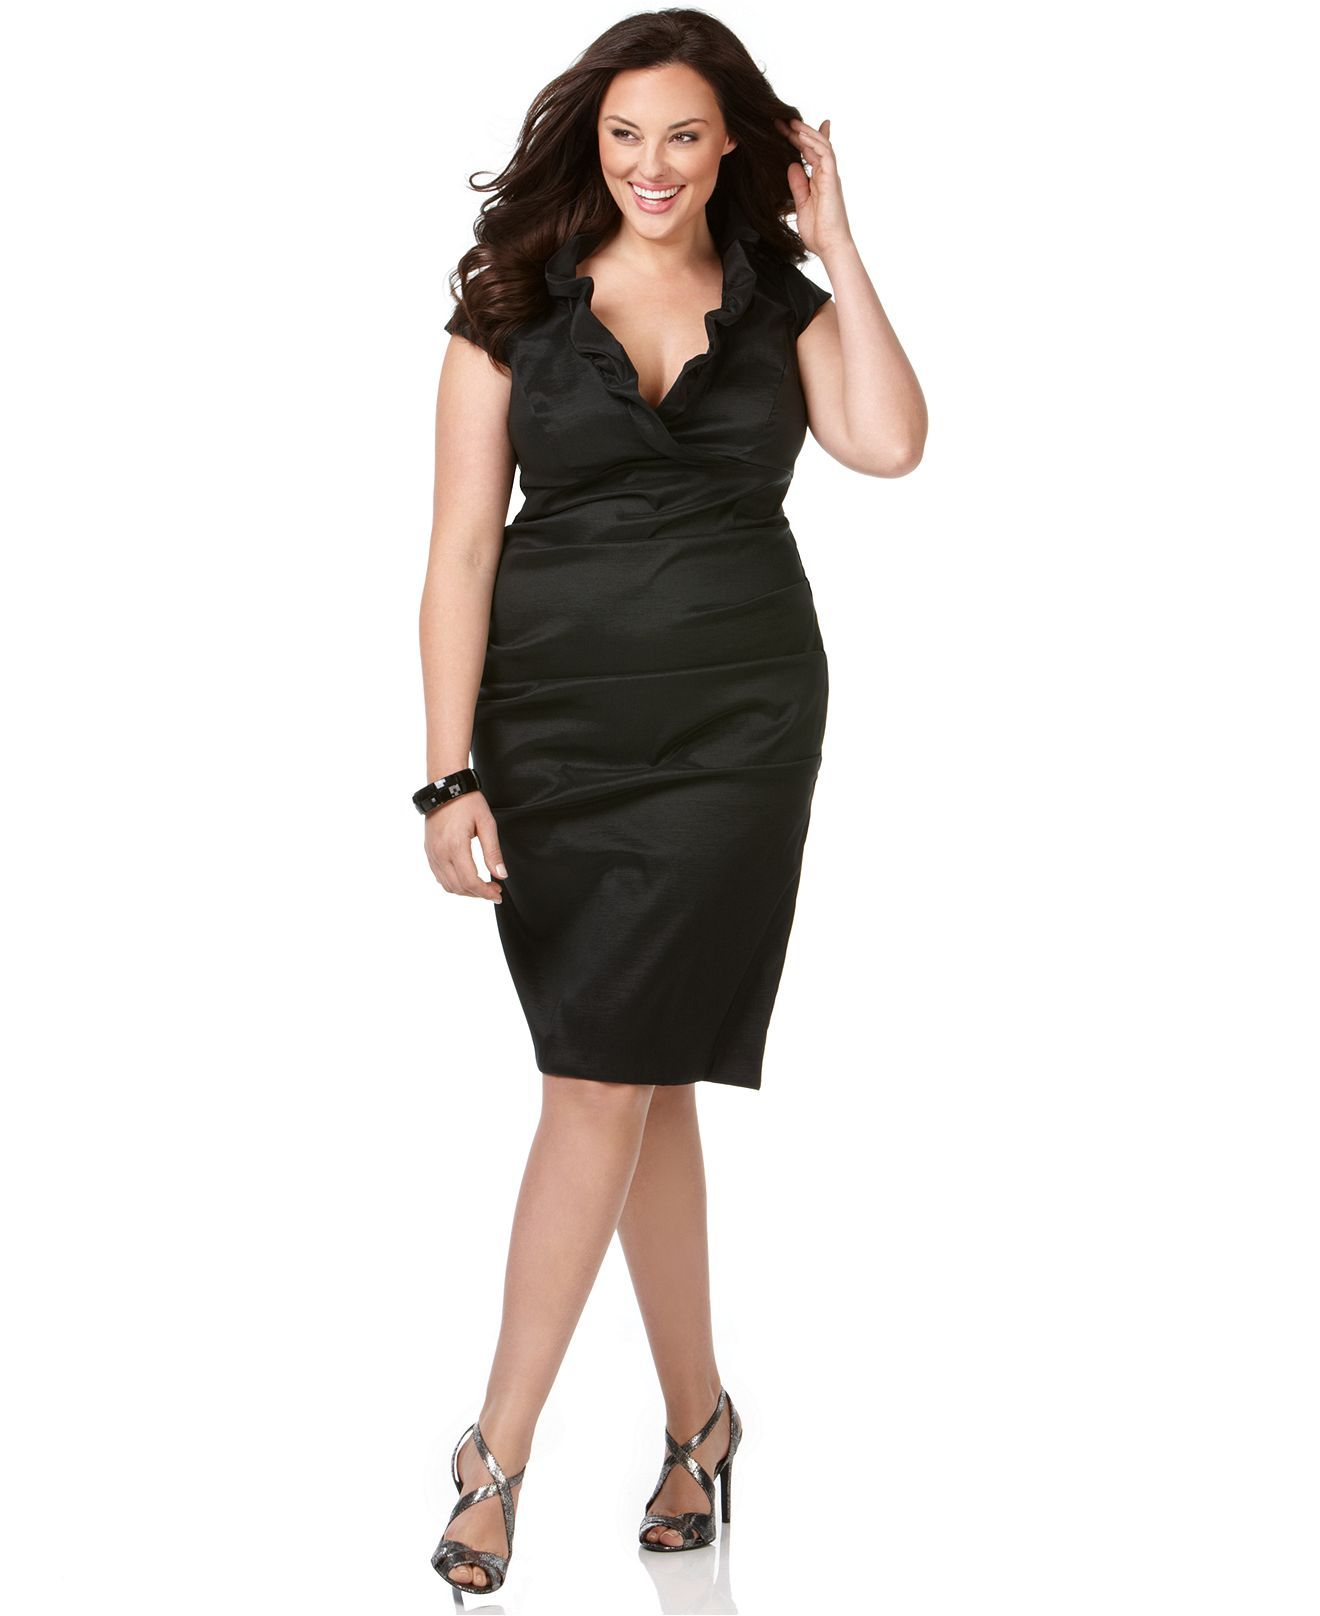 xscape plus size dress, cap sleeve ruffled neckline evening dress